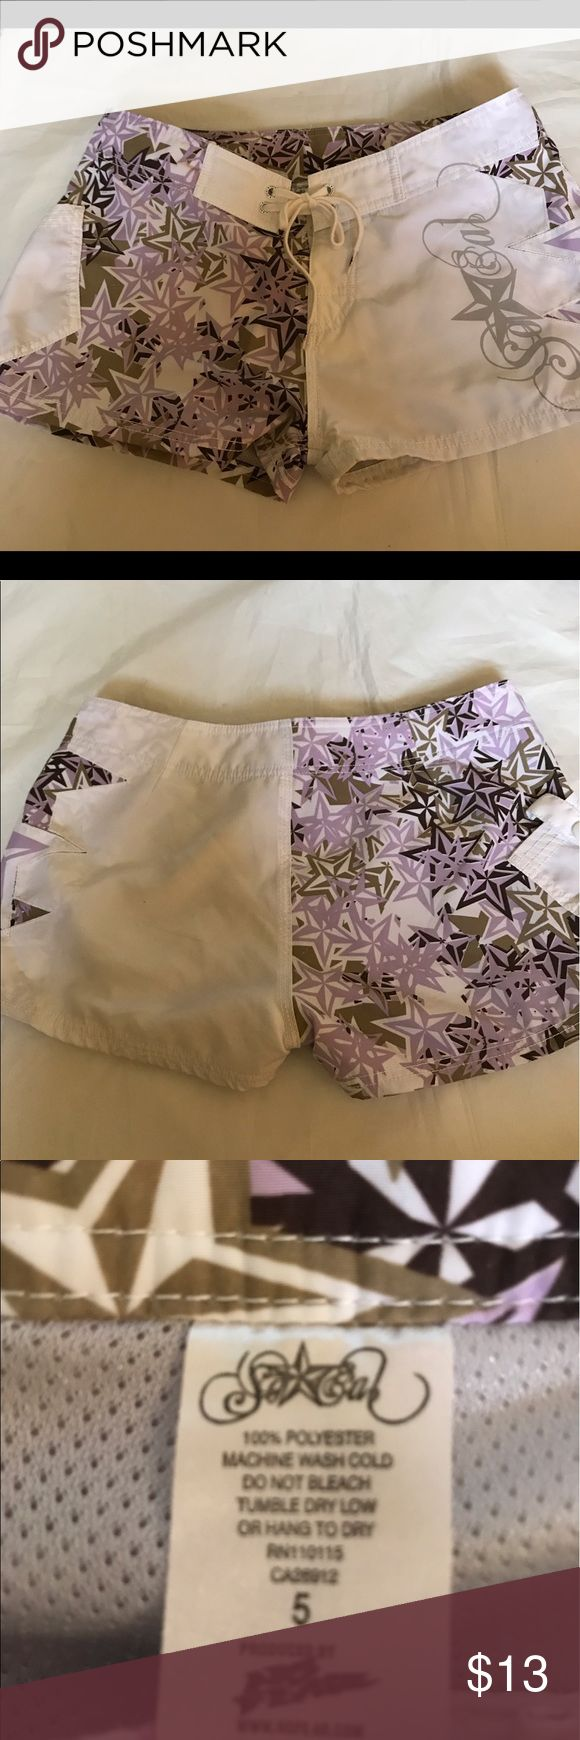 So Cal Girls Board Shorts NWOT Juniors Board Shorts. Pink, brown and black stars on white base. One pocket, Velcro/Tie Closure. Super cute and perfect for the summer! So Cal Swim